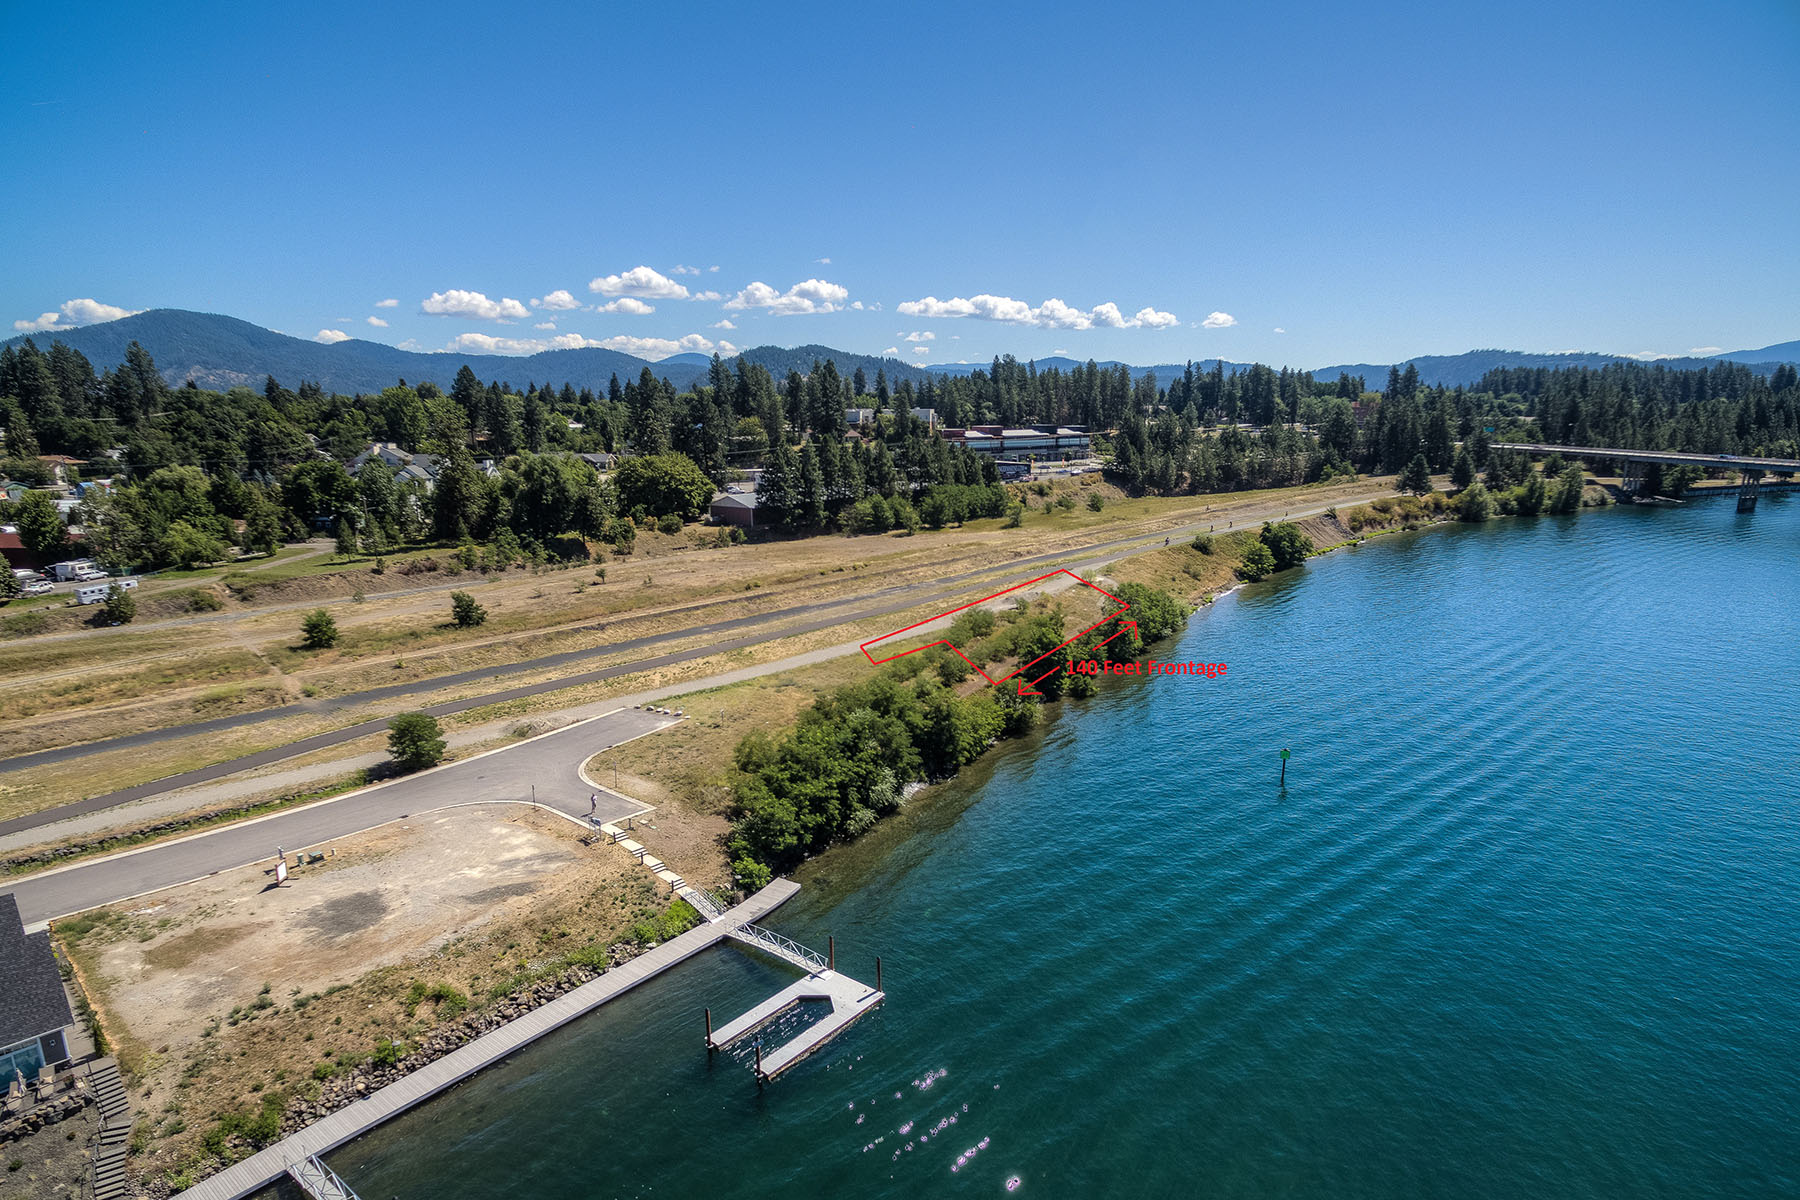 Terreno por un Venta en Stunning Homesite with 140' River Frontage Lot 2 Blk 1 Bellerive 6th Addition Coeur D Alene, Idaho, 83814 Estados Unidos